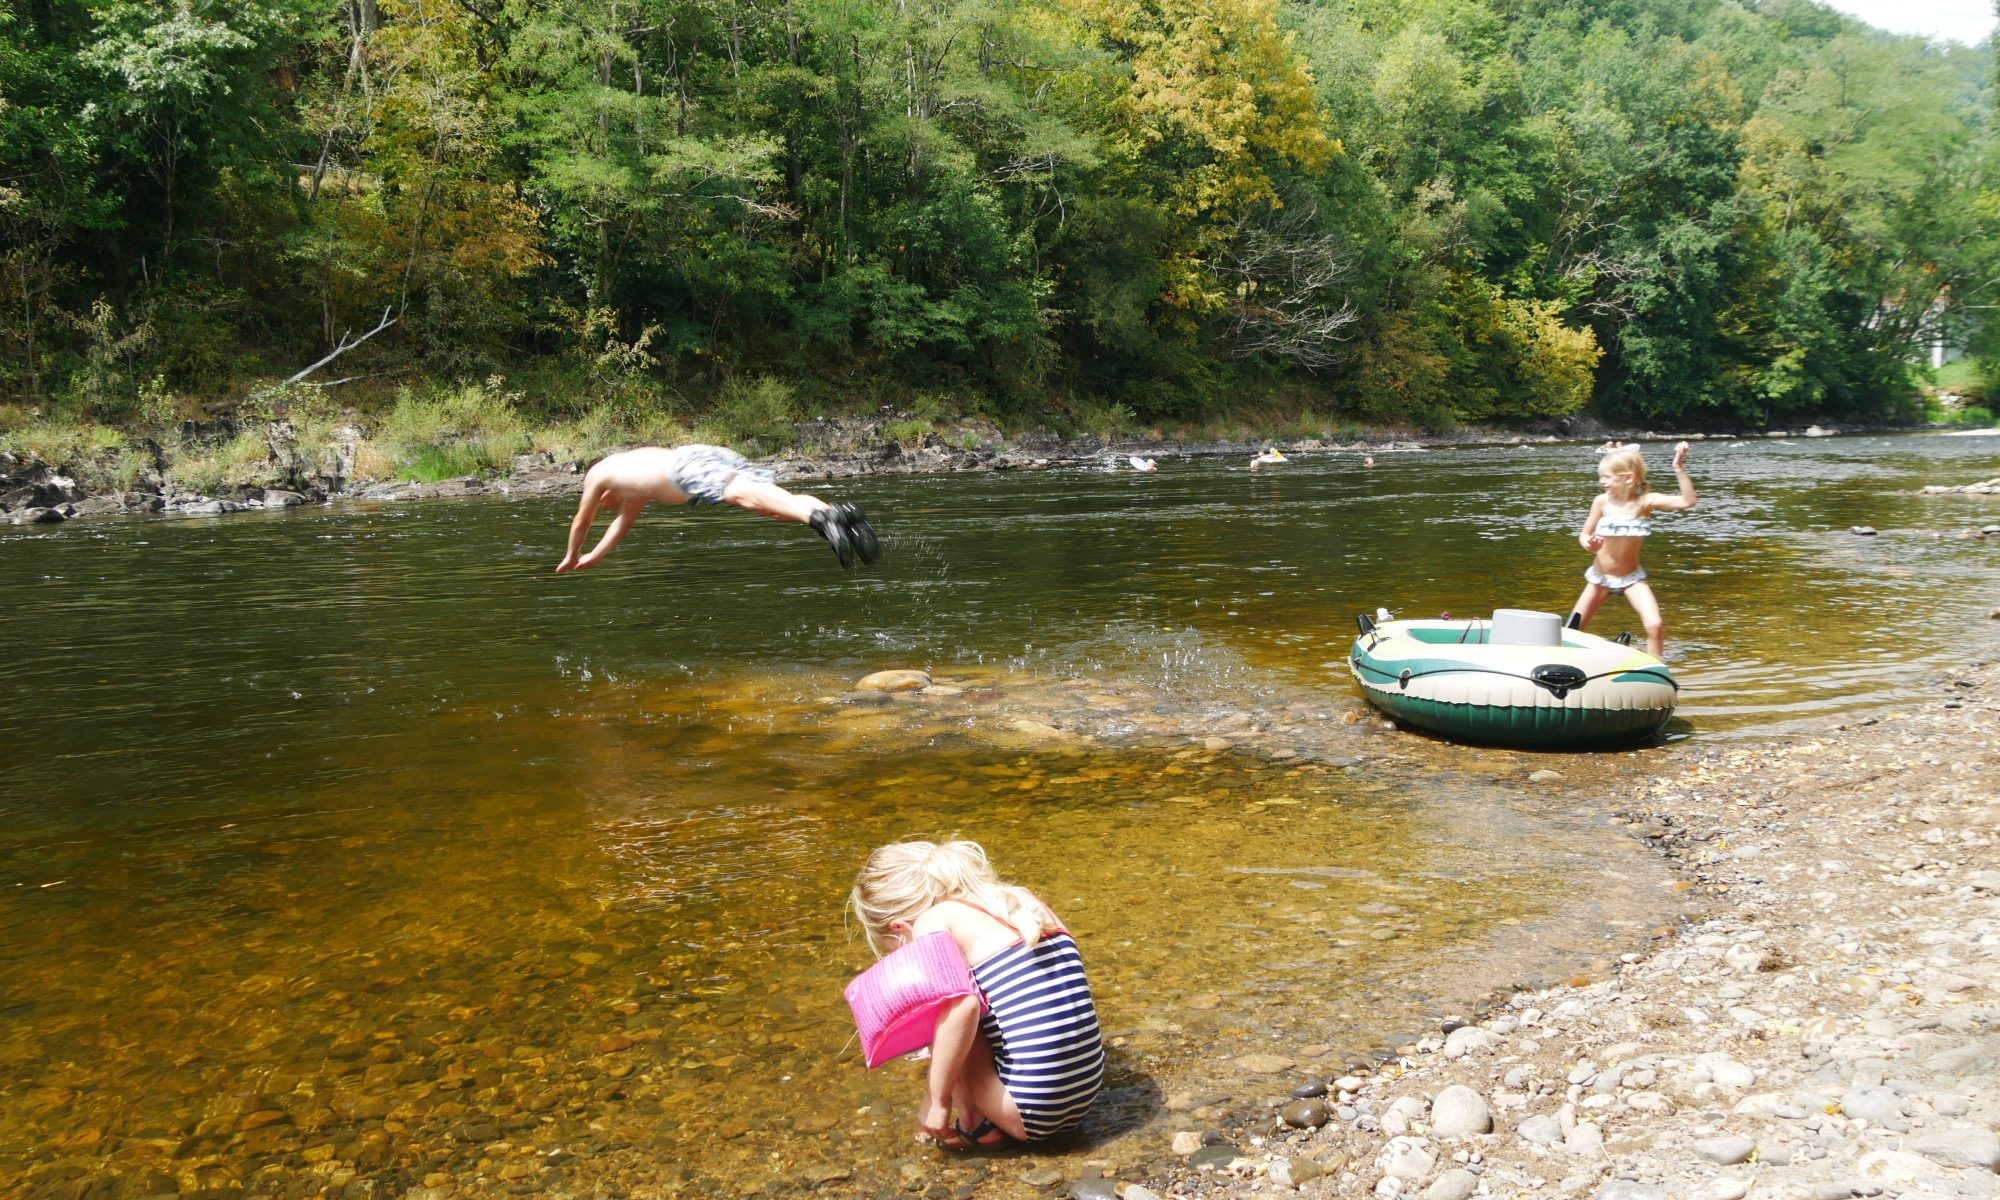 Water swimming diving into river Dordogne small campsite